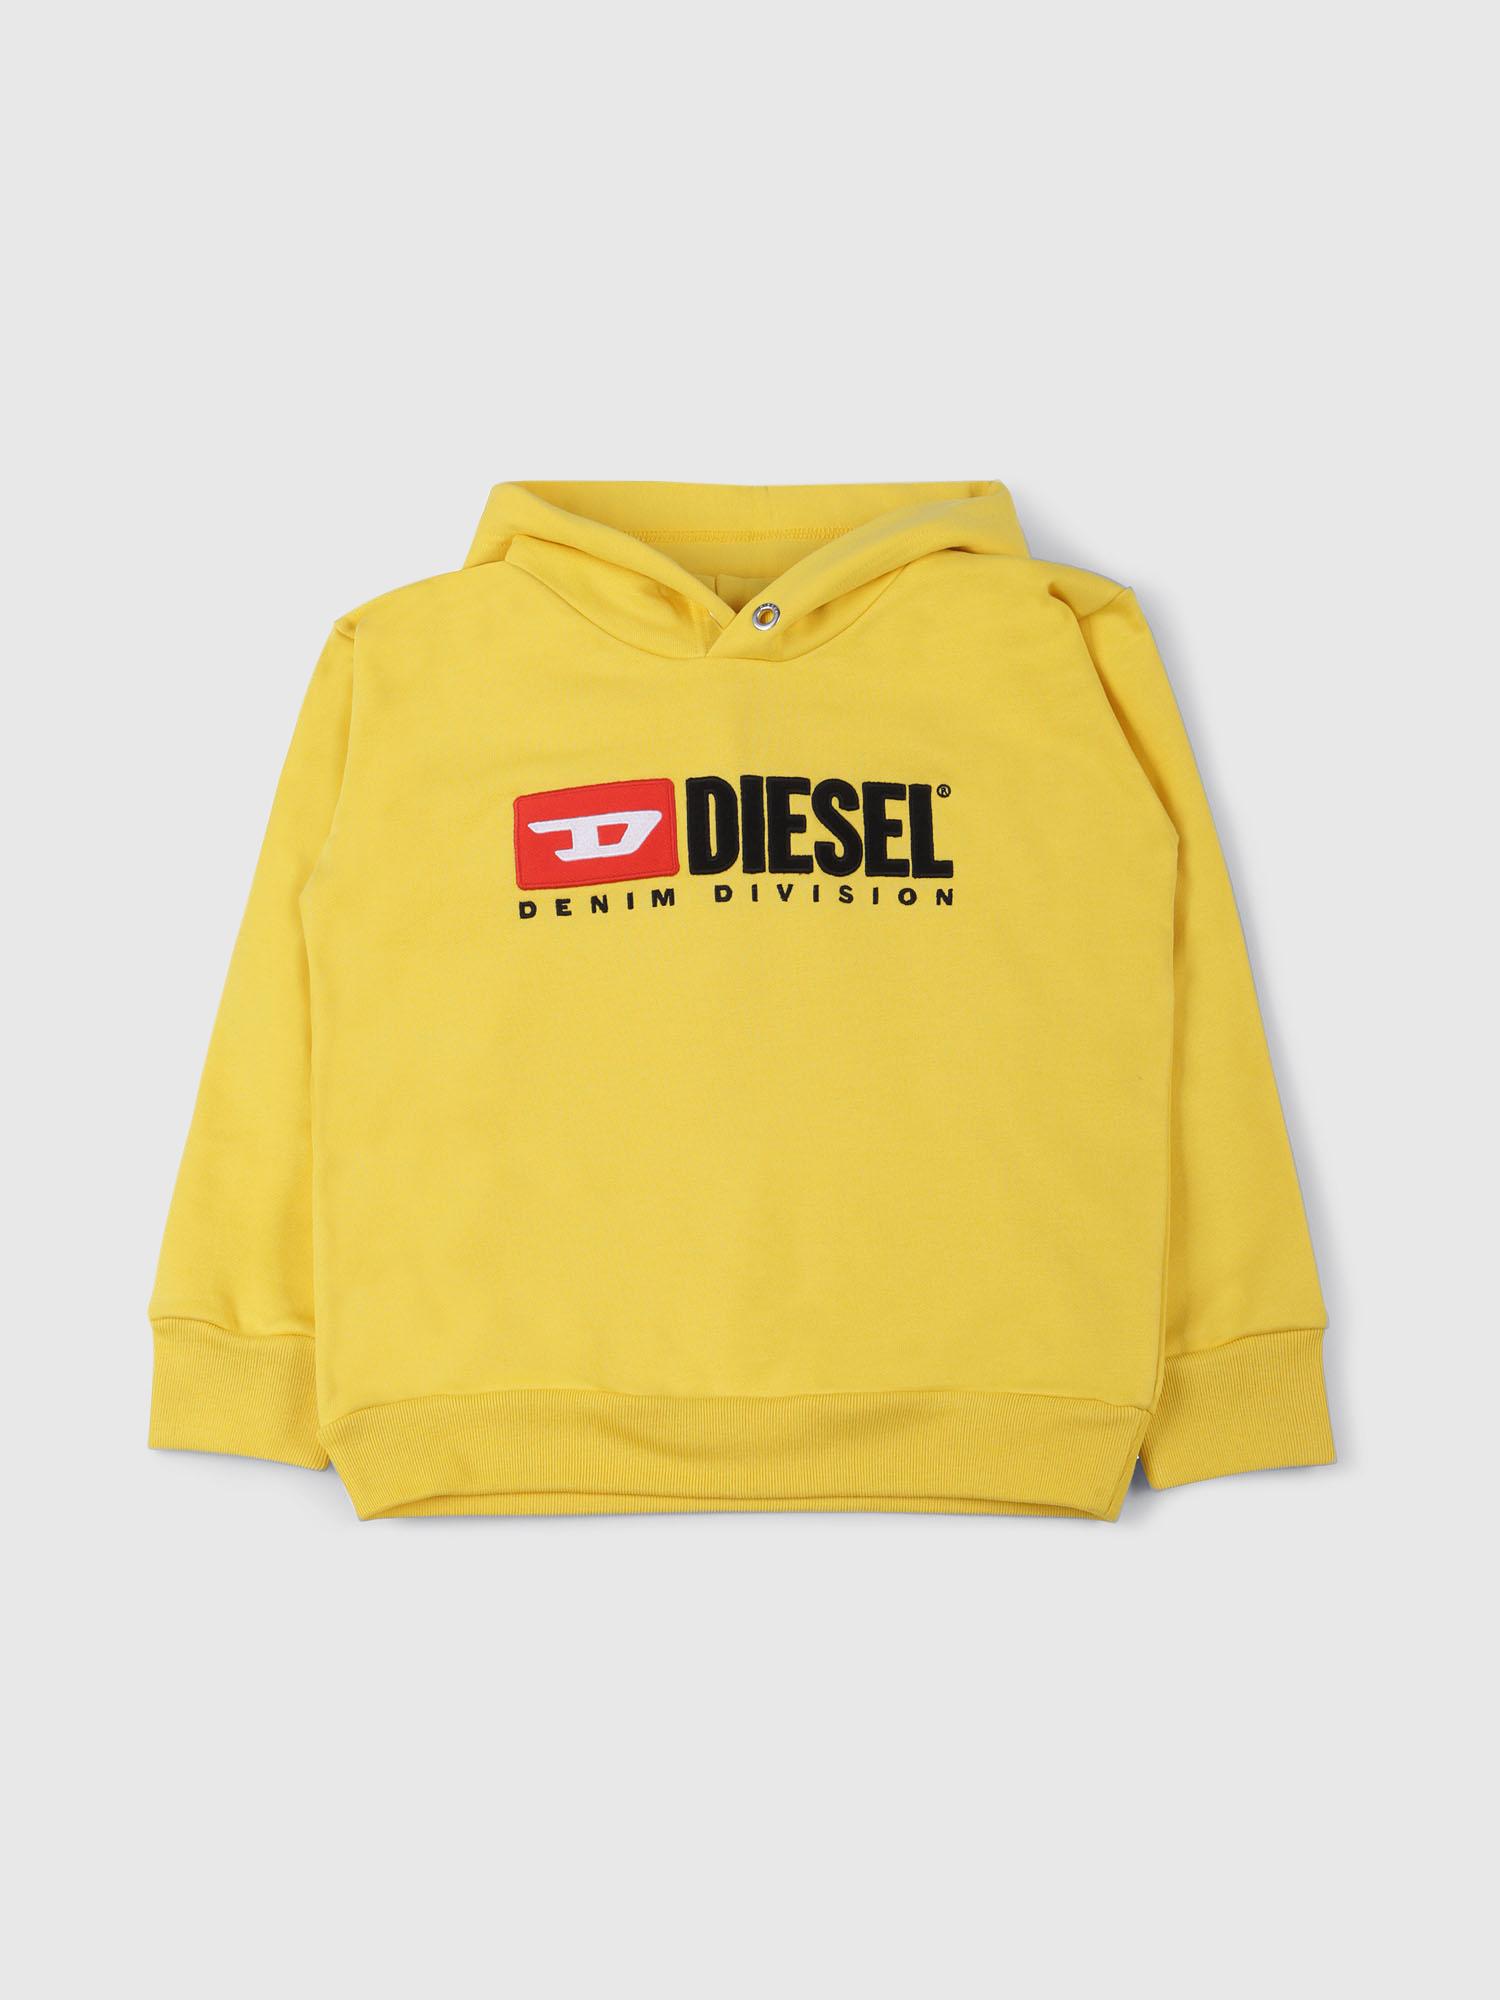 Diesel - SDIVISION OVER,  - Sweatshirts - Image 1